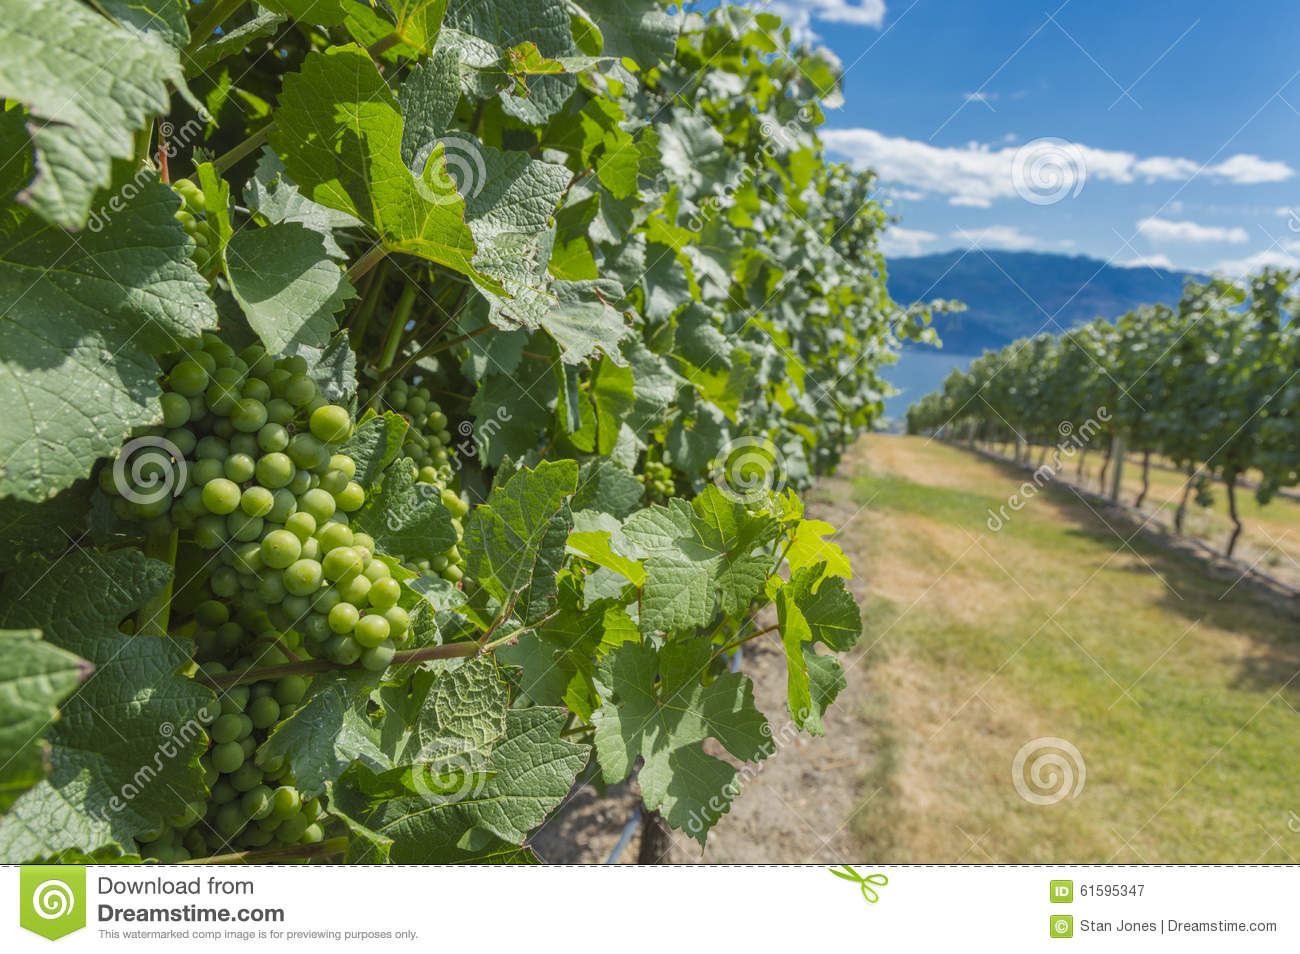 how to grow grapes in canada